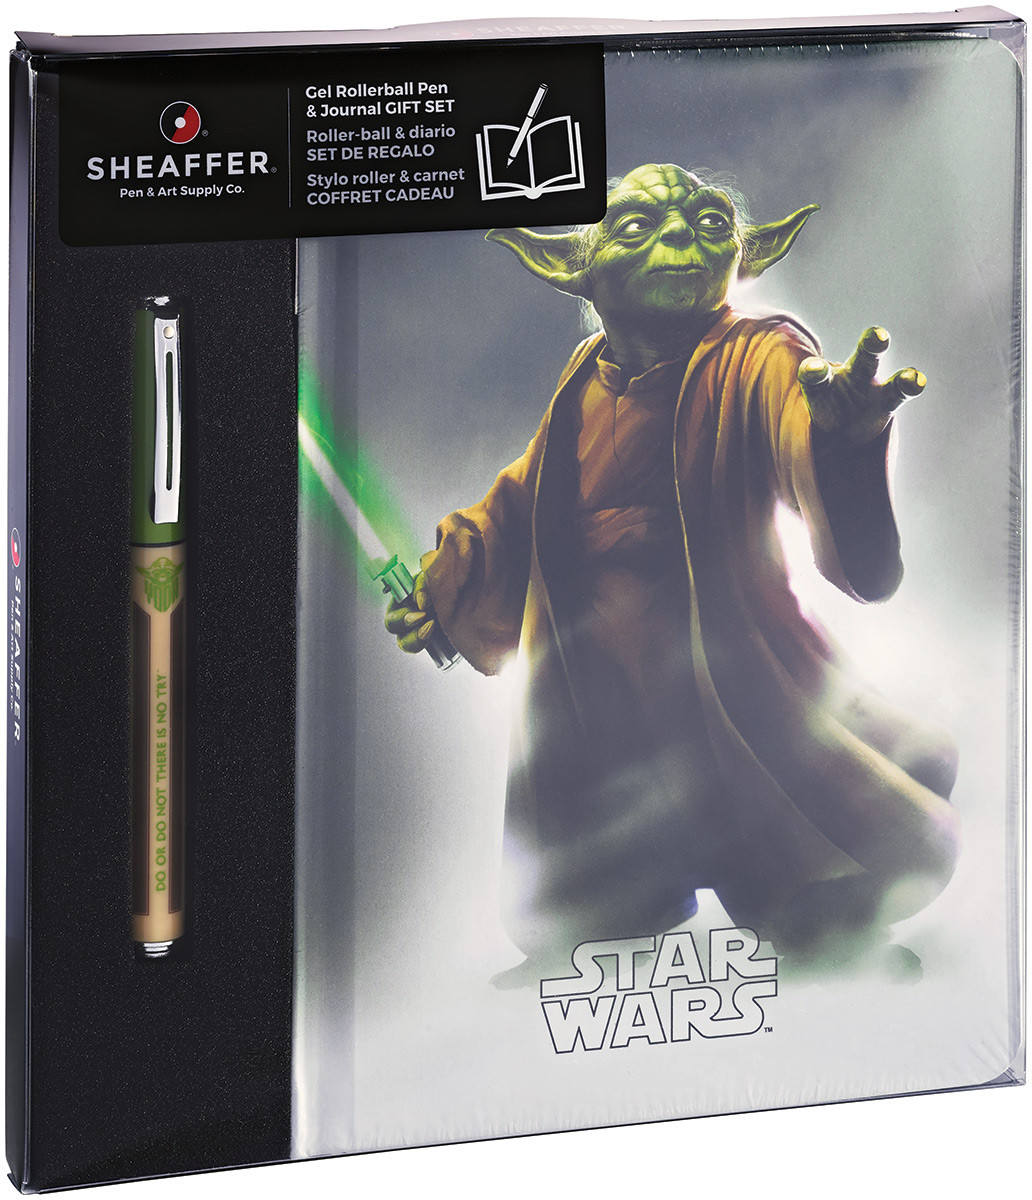 Sheaffer Pop Rollerball Pen - Star Wars™ Yoda with Journal